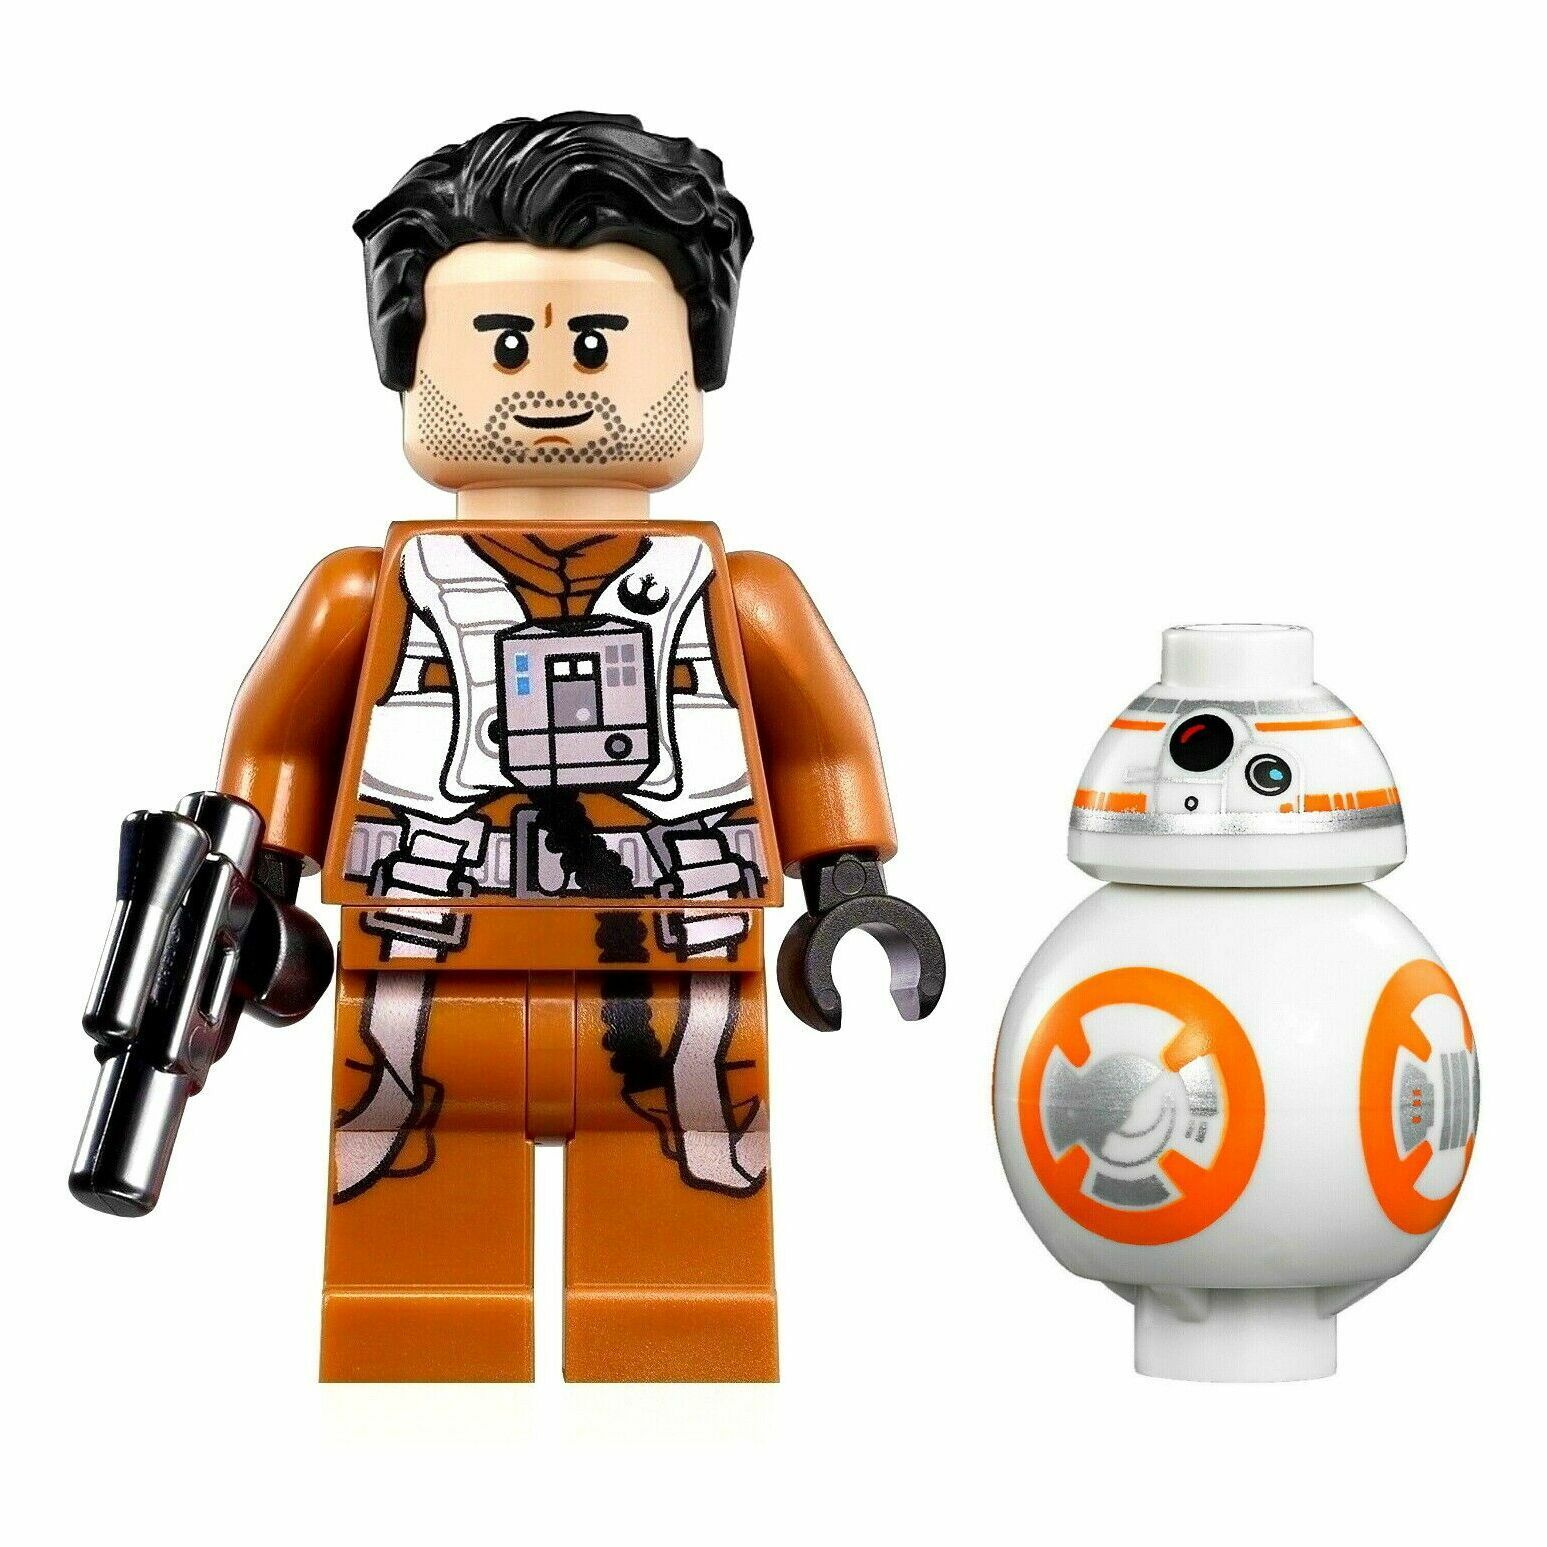 LEGO BB8 MINIFIGURE STAR WARS DROID ROBOT FORCE AWAKENS GENUINE COLLECTIBLE FIG